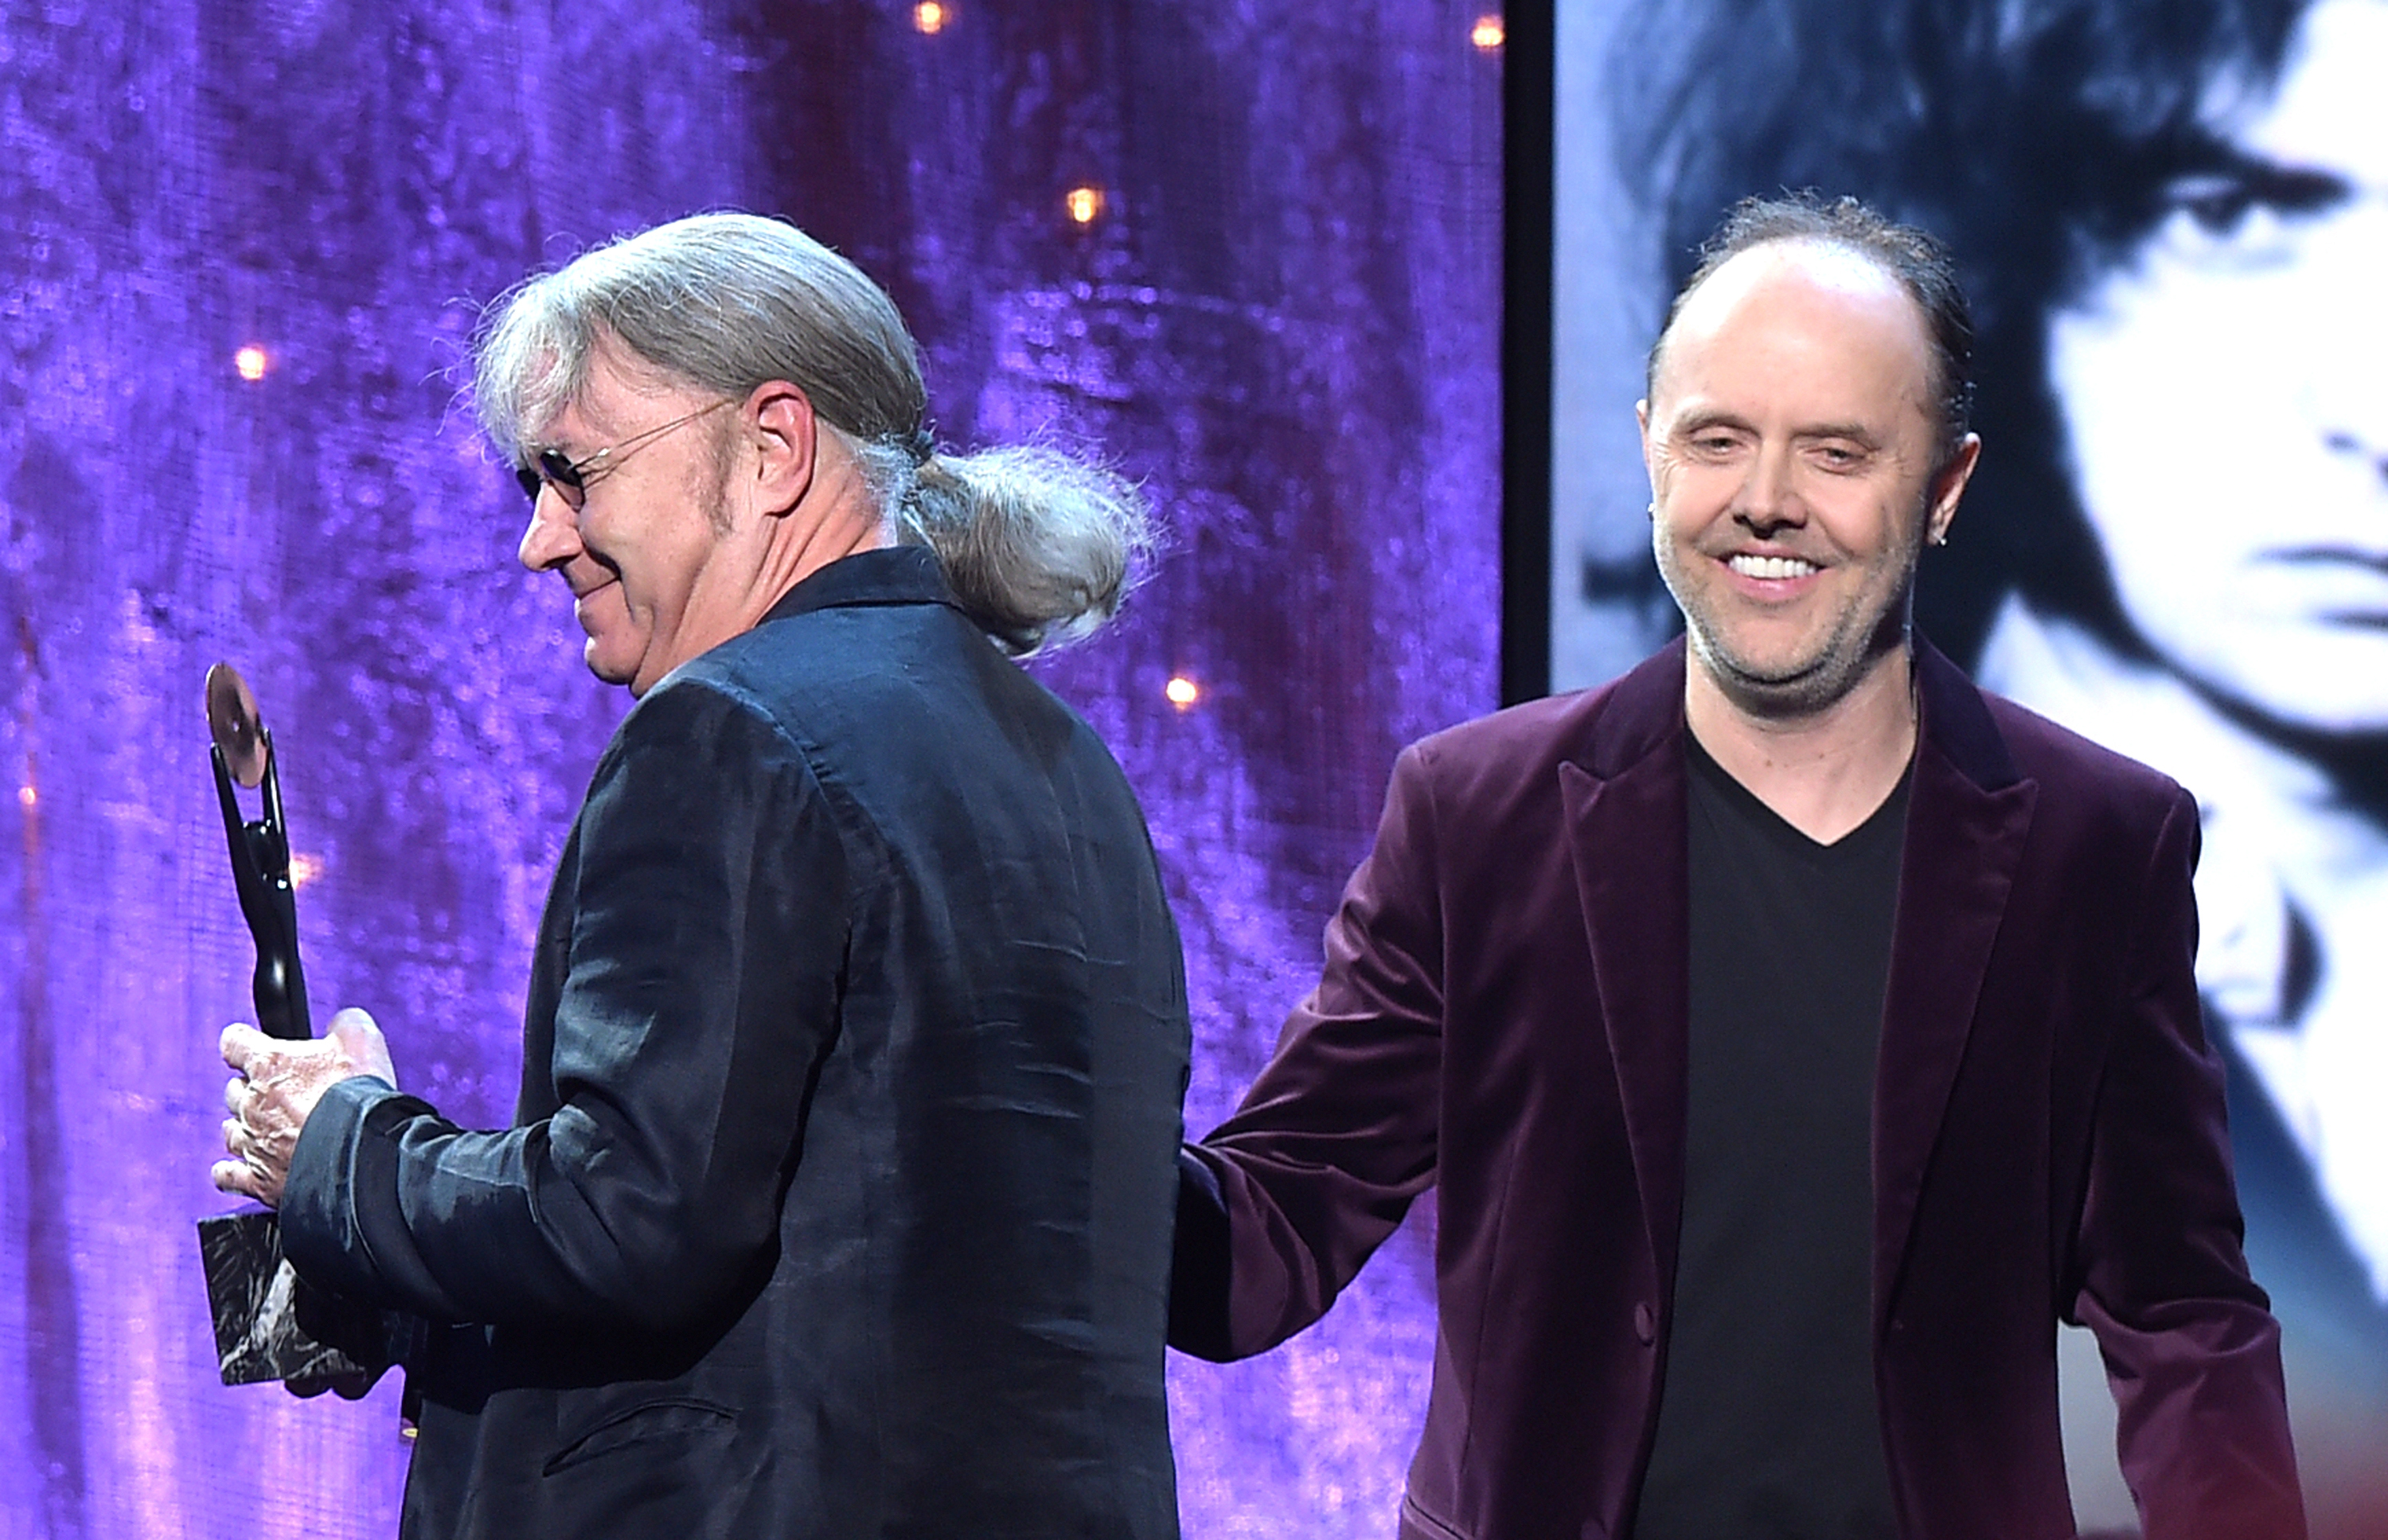 Lars Ulrich Talks Inducting Deep Purple in Hall of Fame